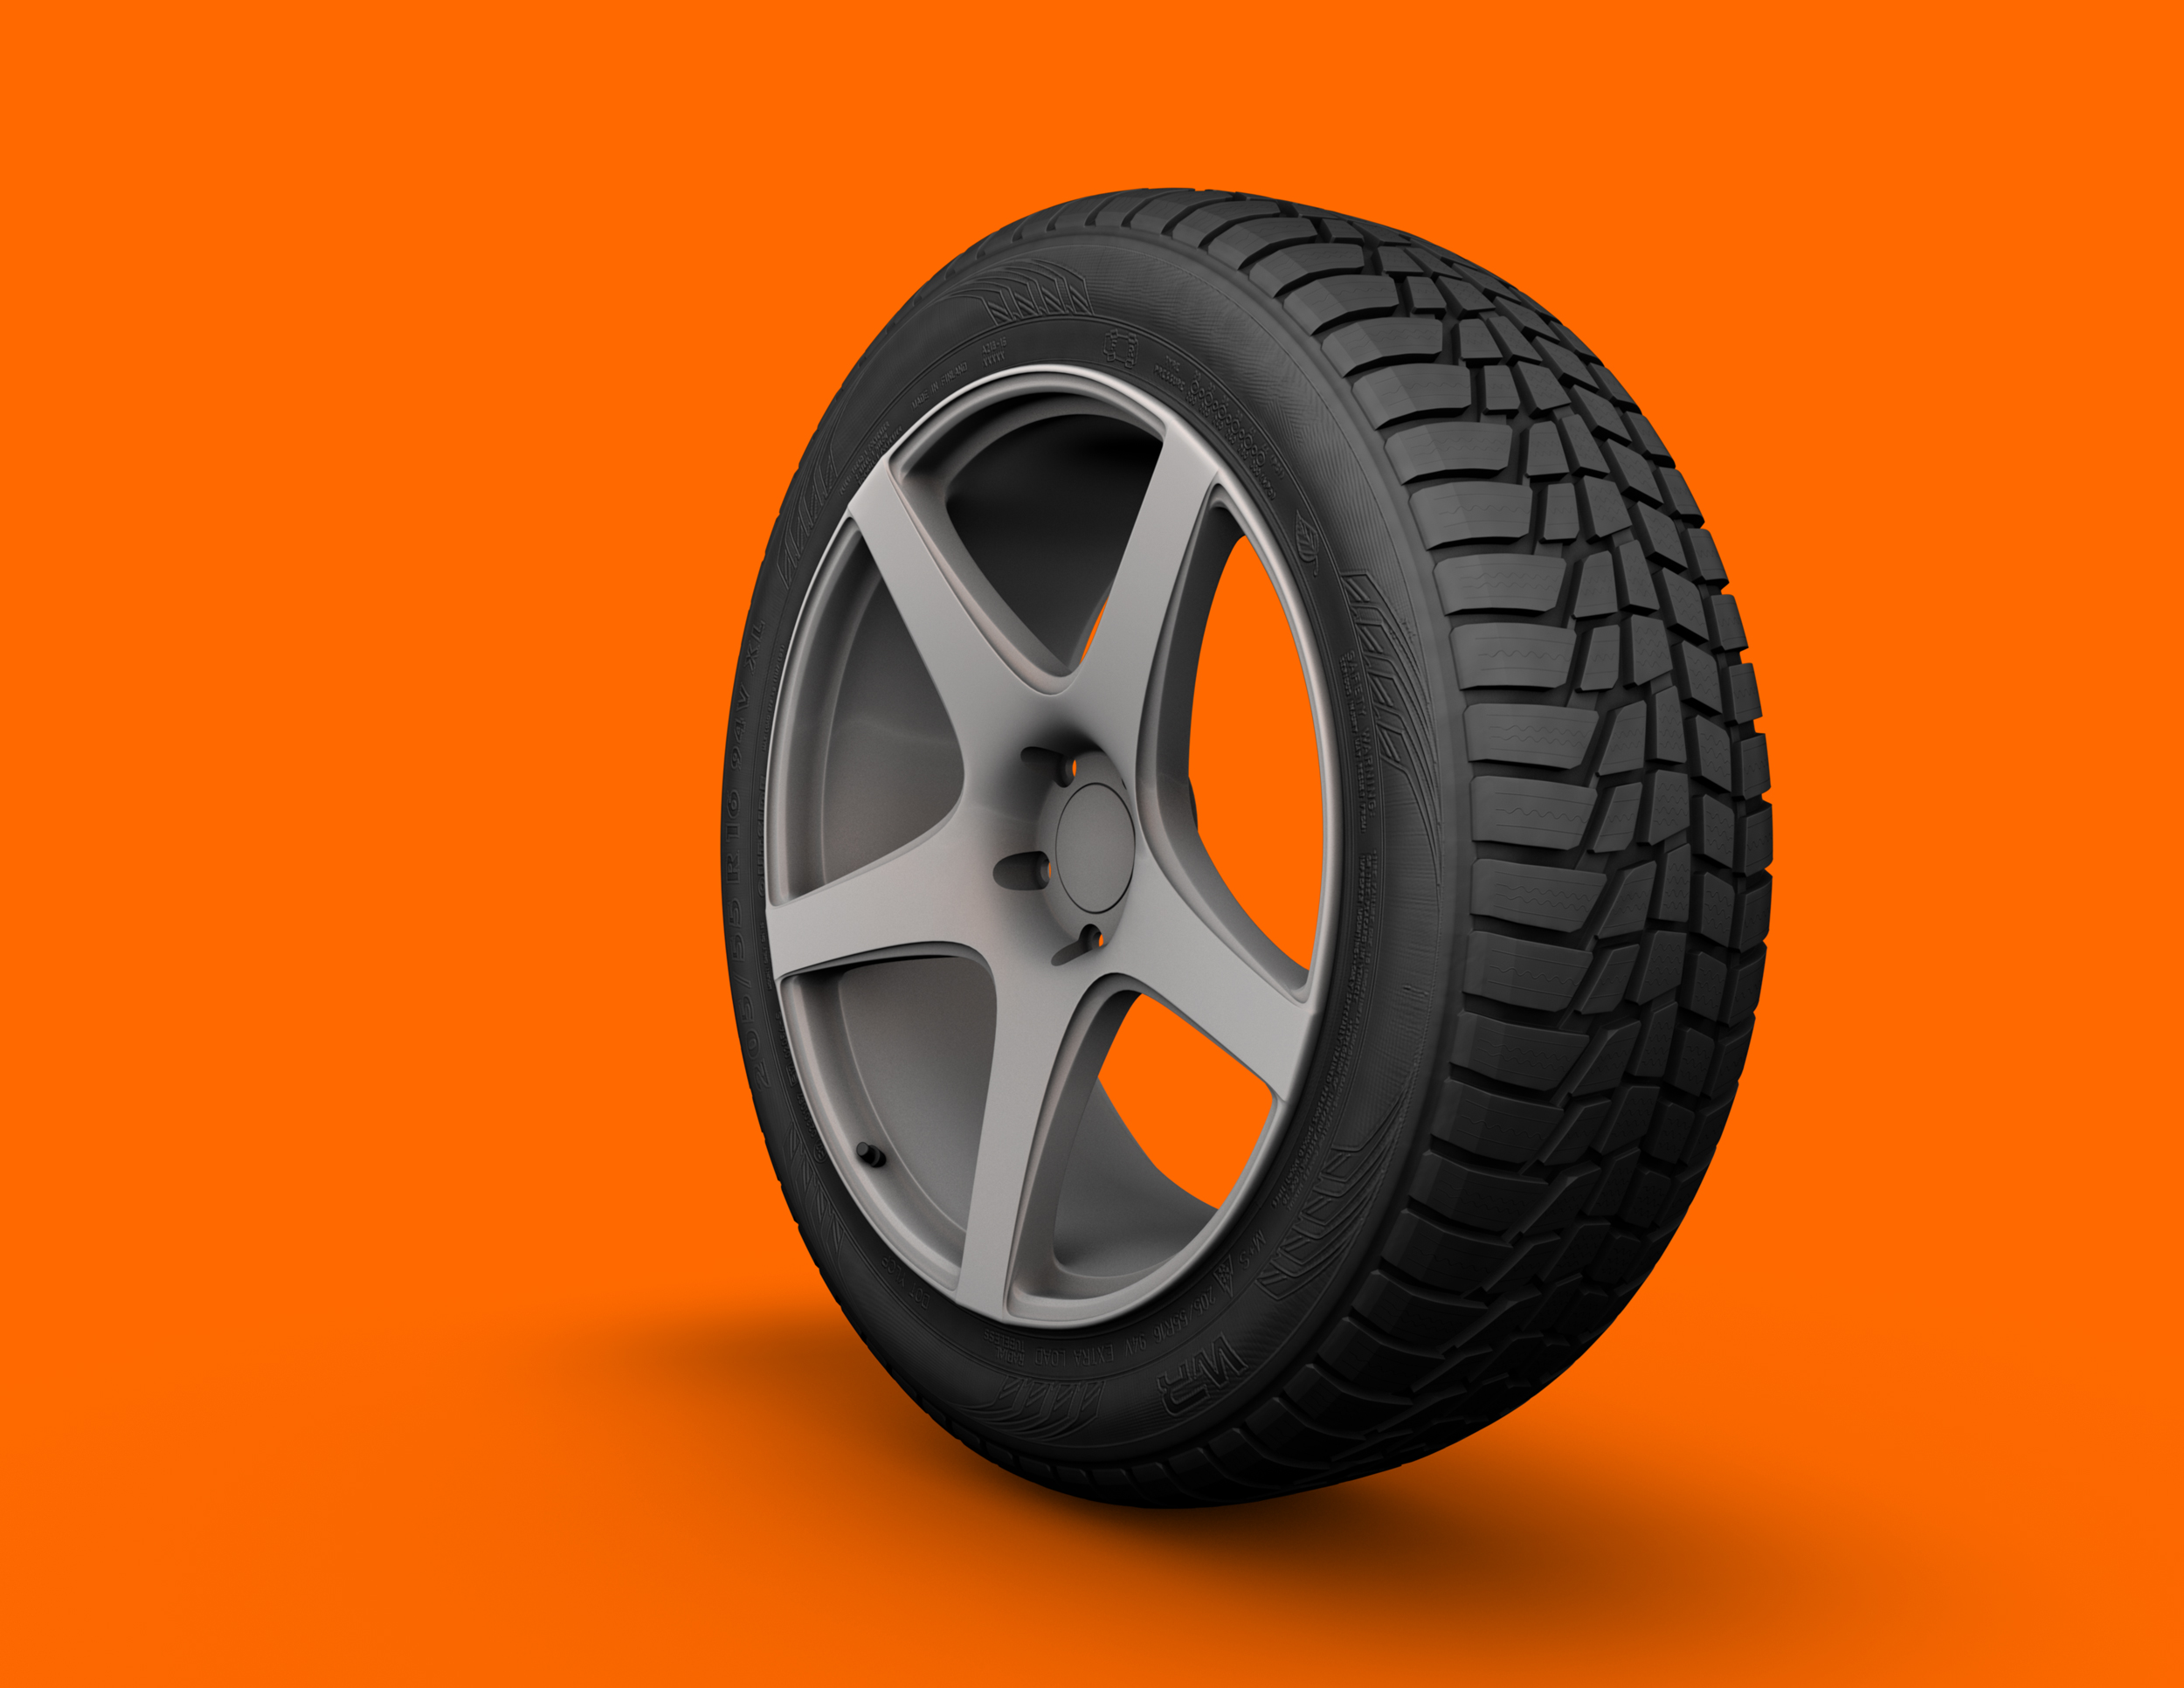 Kal-Tire-Full-Size-Spare